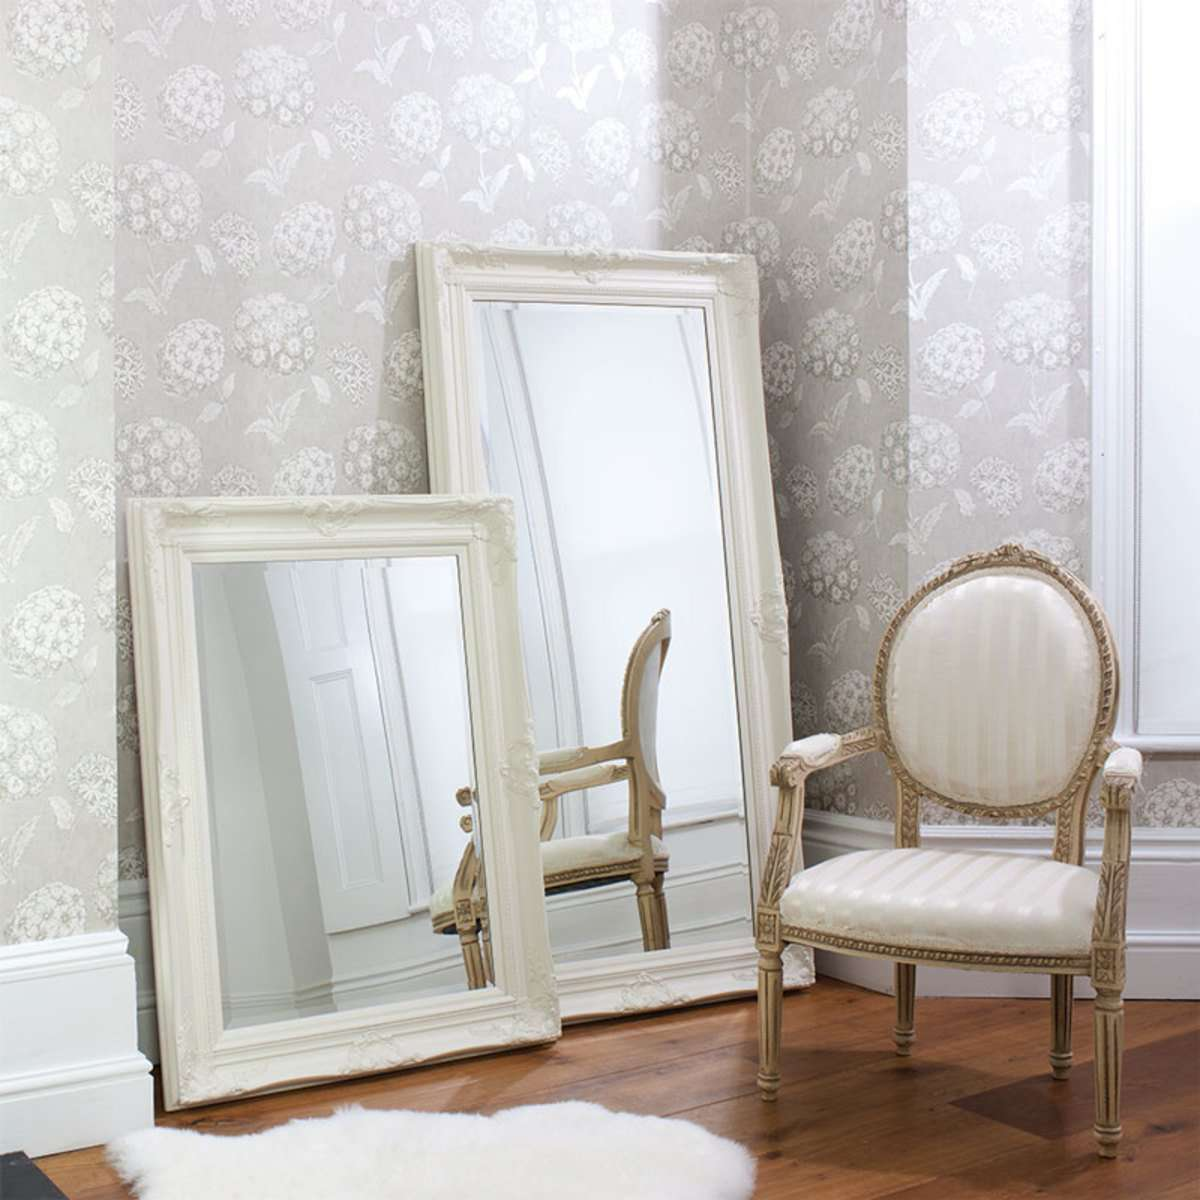 Gallery Harrow Cream Mirror in 2 SizesGallery Harrow Cream Mirror in 2 Sizes